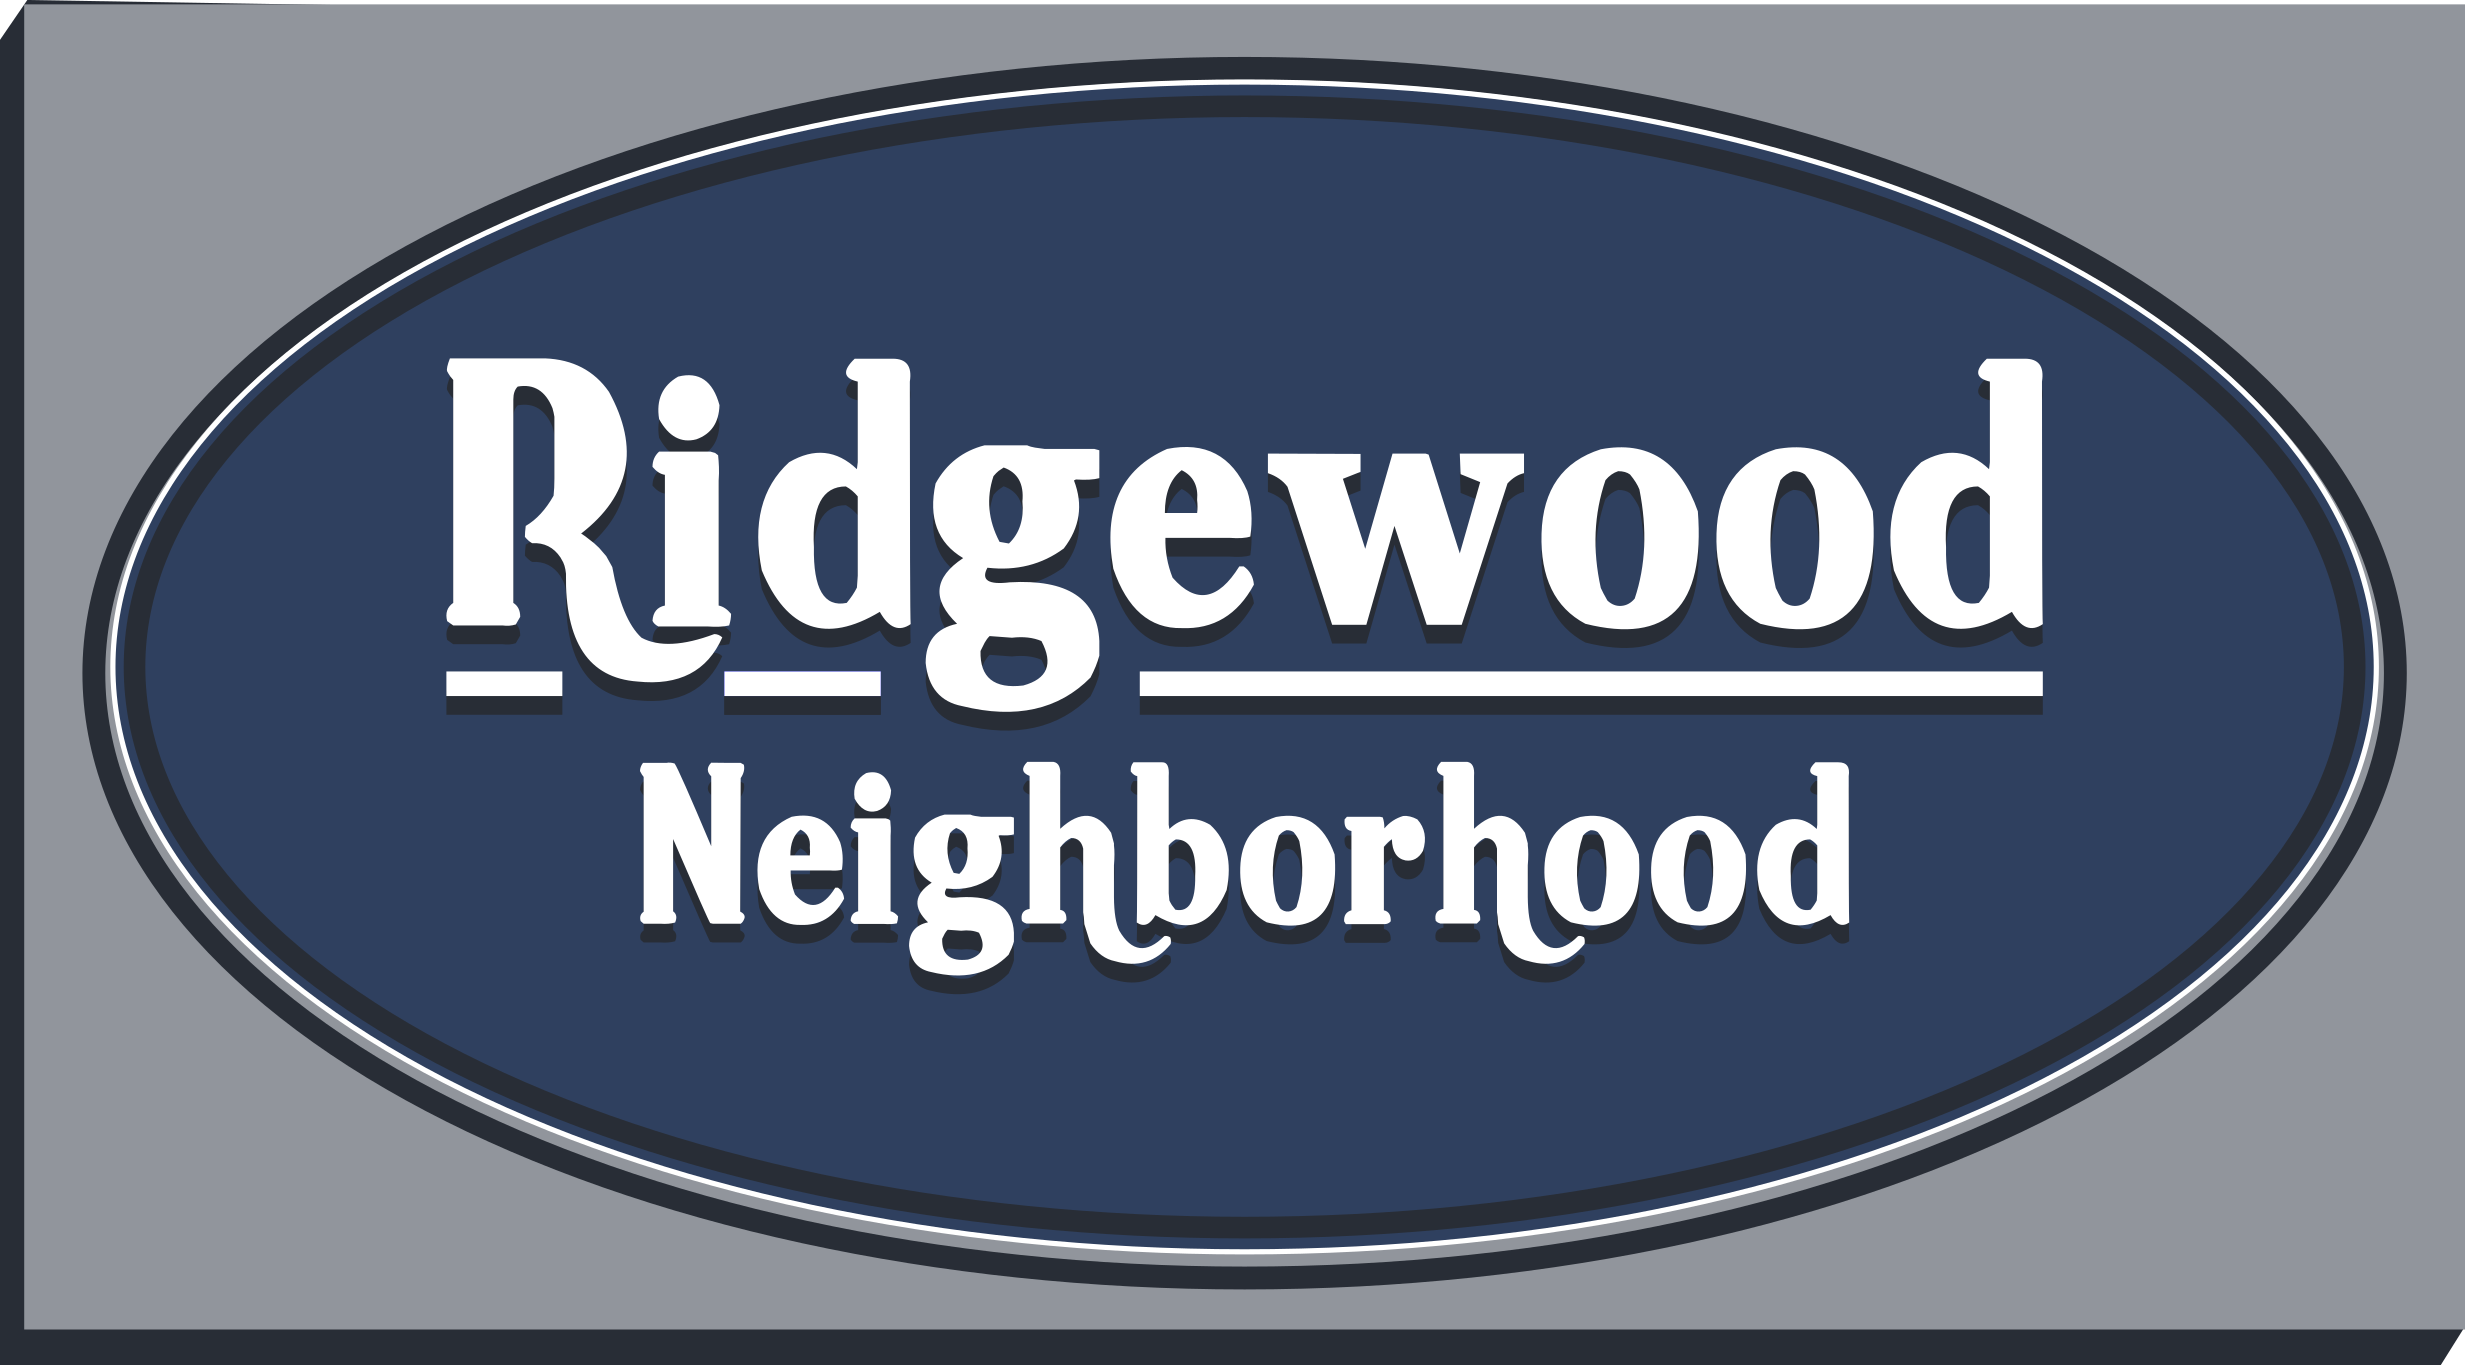 Madison's Ridgewood Neighborhood - sign